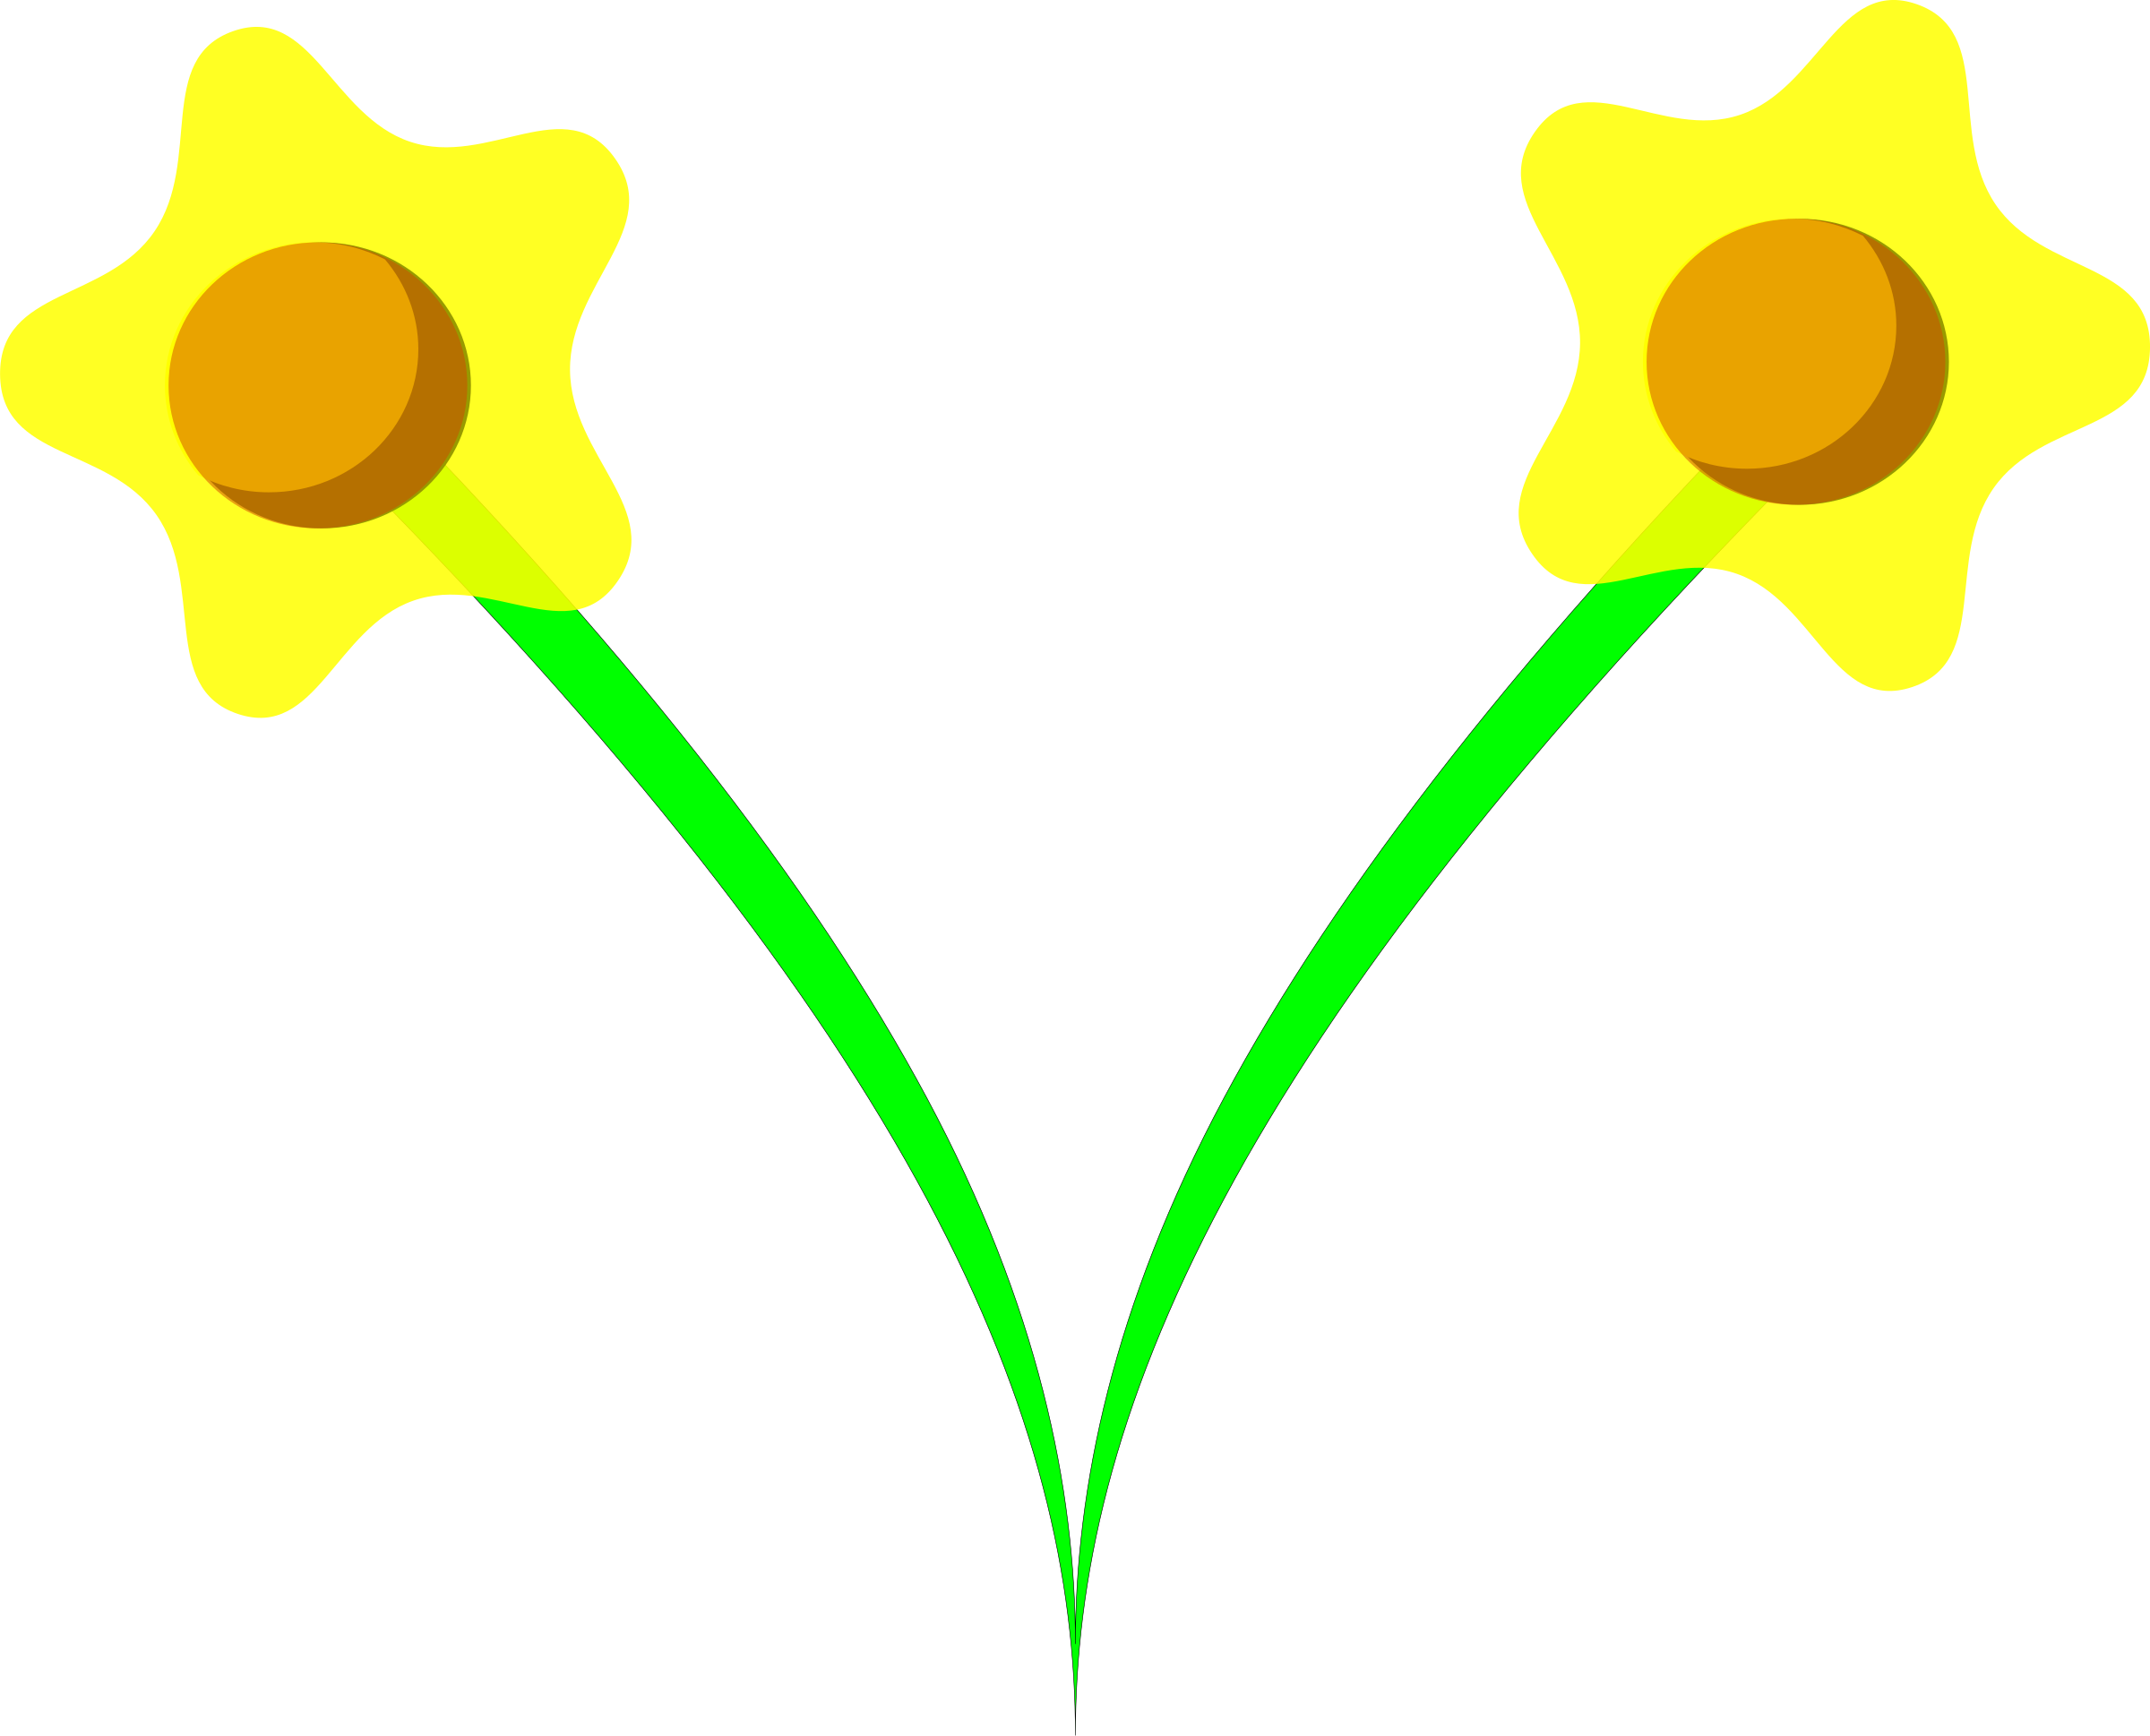 Daffodil flower clipart clip black and white download Clipart - daffodil clip black and white download